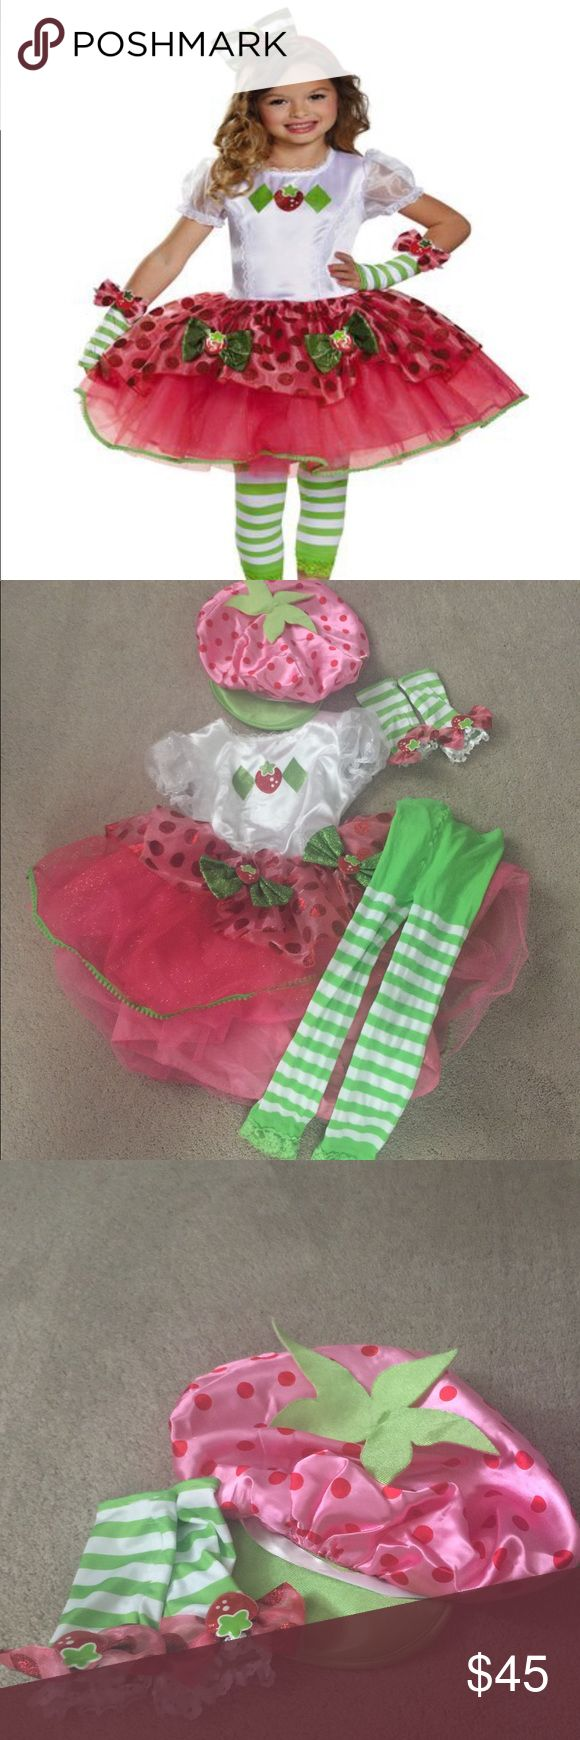 💥Sunday Sale!💥Strawberry Shortcake Costume!🍓 🍓Excellent condition!🍓Comes with tutu dress, tights, hat and glovettes! I paid $61 for the costume set and $15 for the hat. I do not have the headband. The tights have some piling. Minimal and shouldn't show. See pics. This is in excellent condition and very hard to part with. My daughter loved it and looked adorable! Your little strawberry shortcake will look adorable, too!🍓 Costumes Halloween